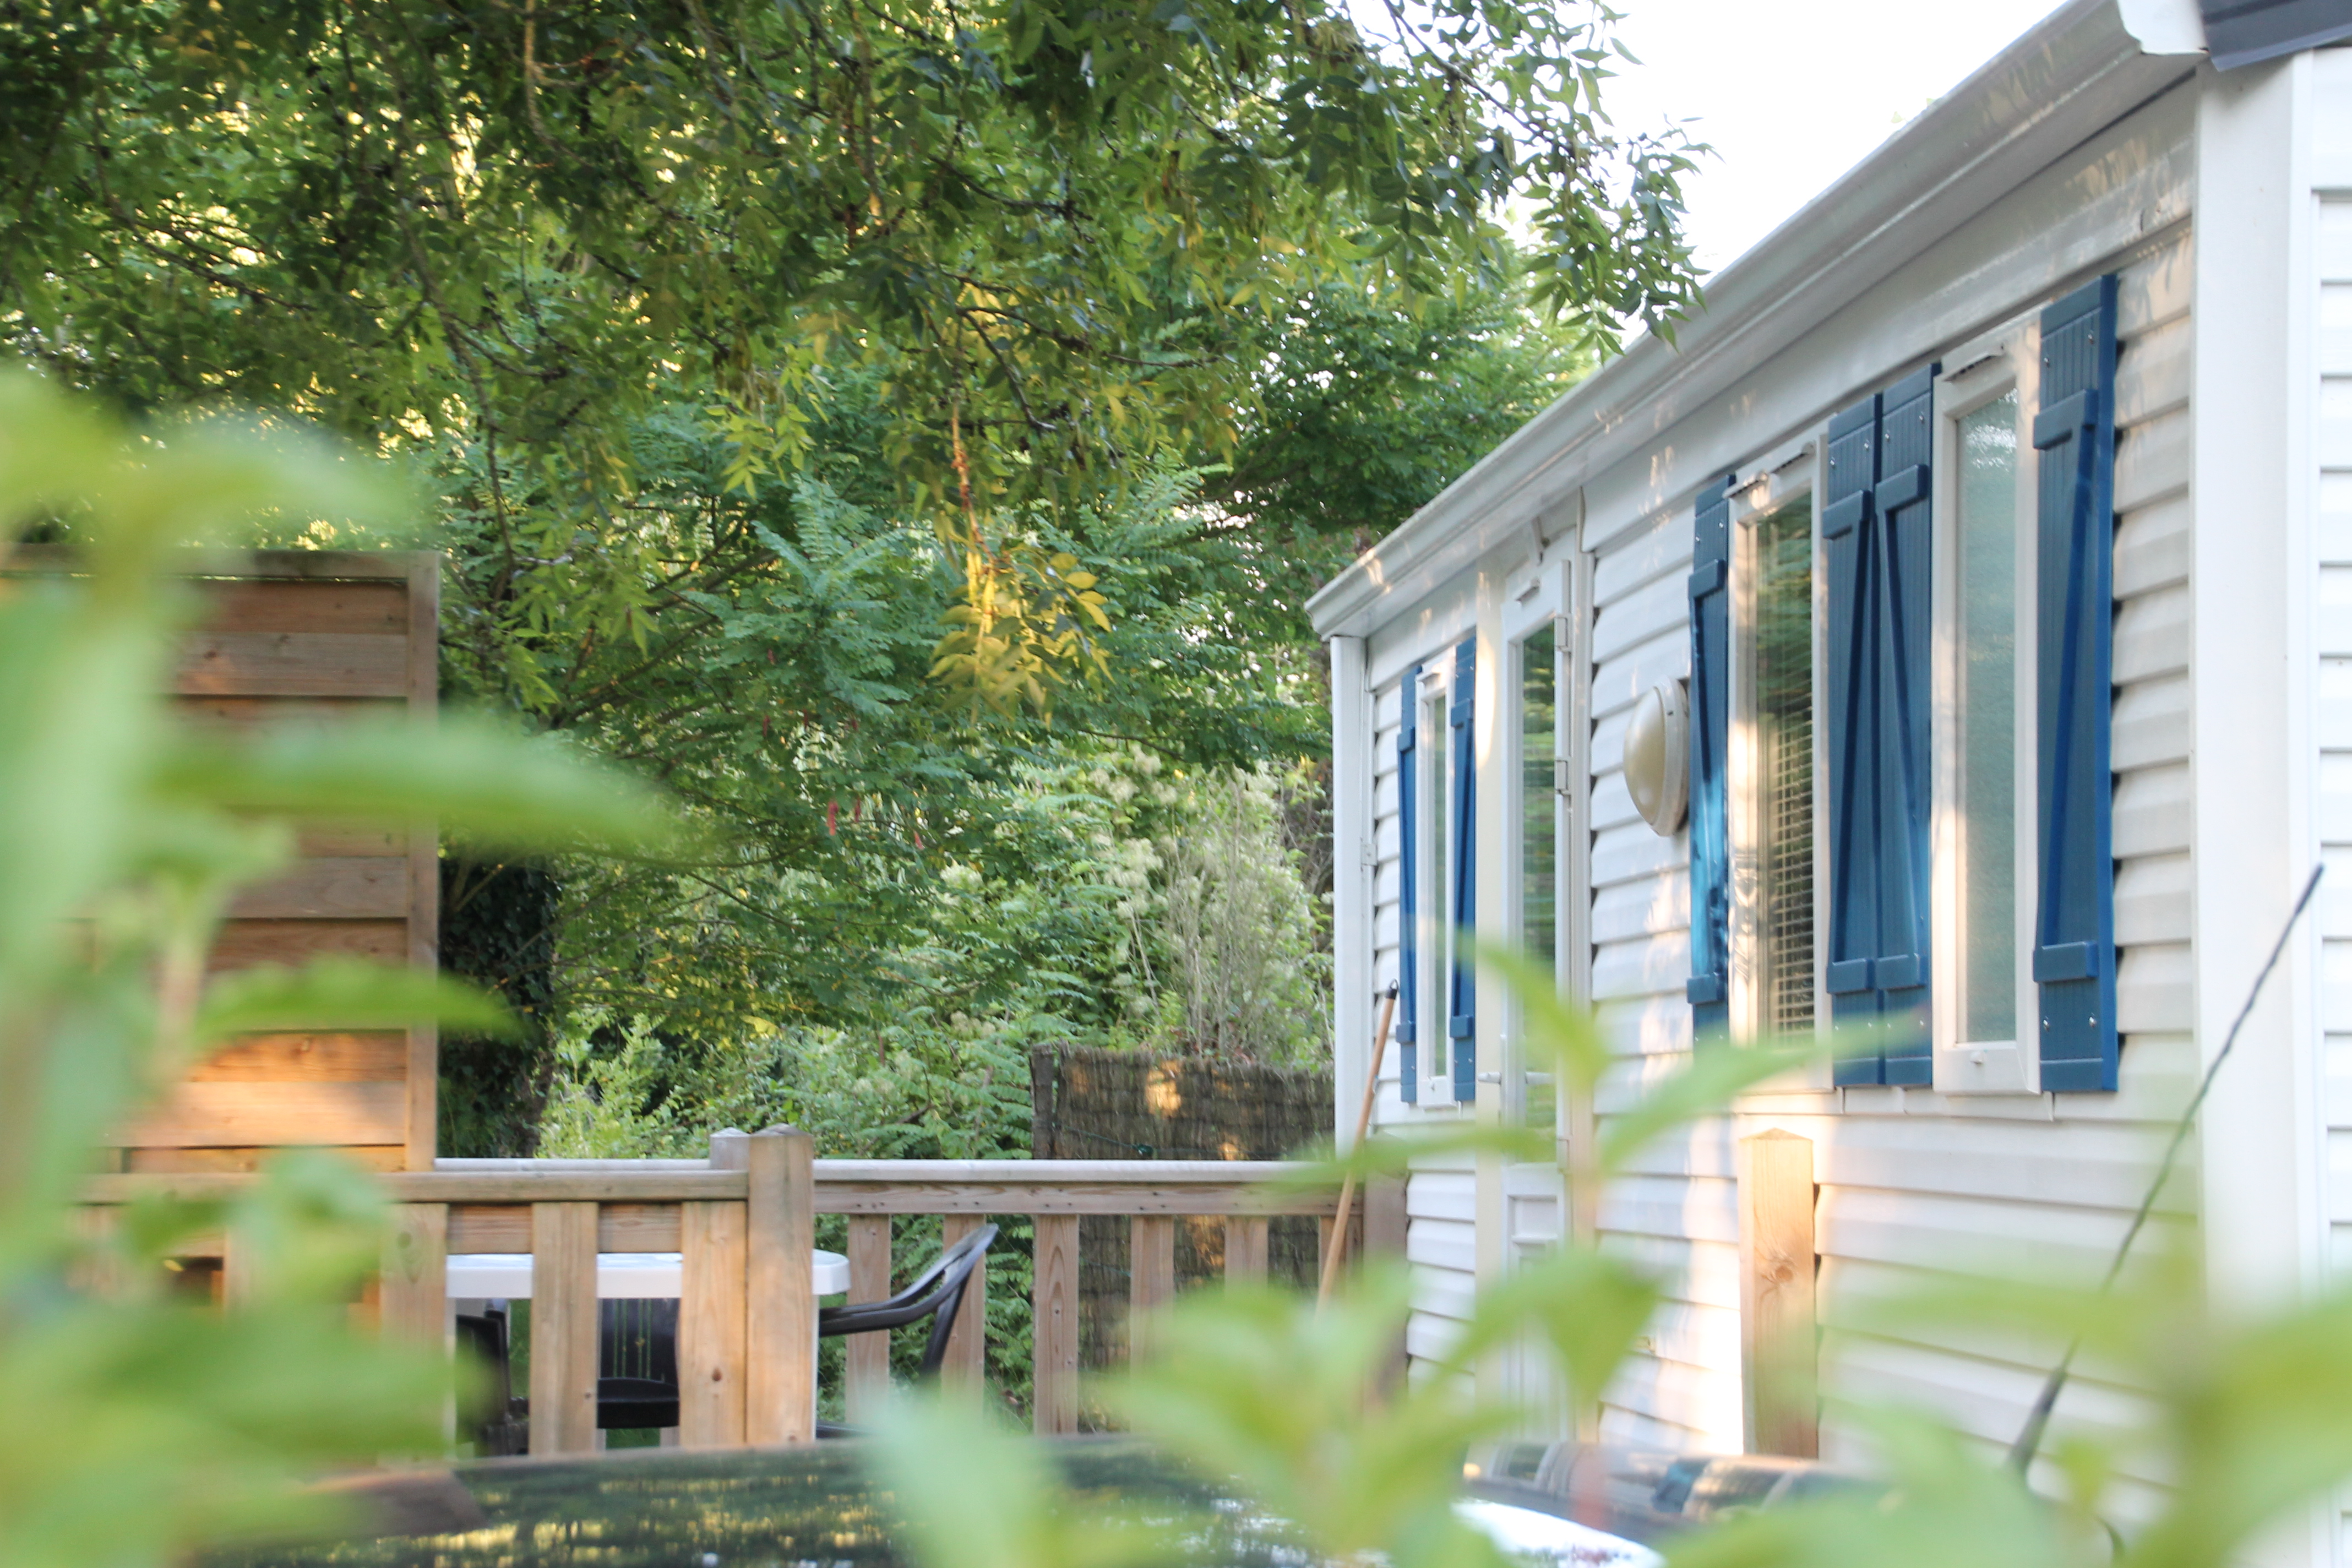 Camping-le-vieux-chene-nalliers-85-hpa (8)